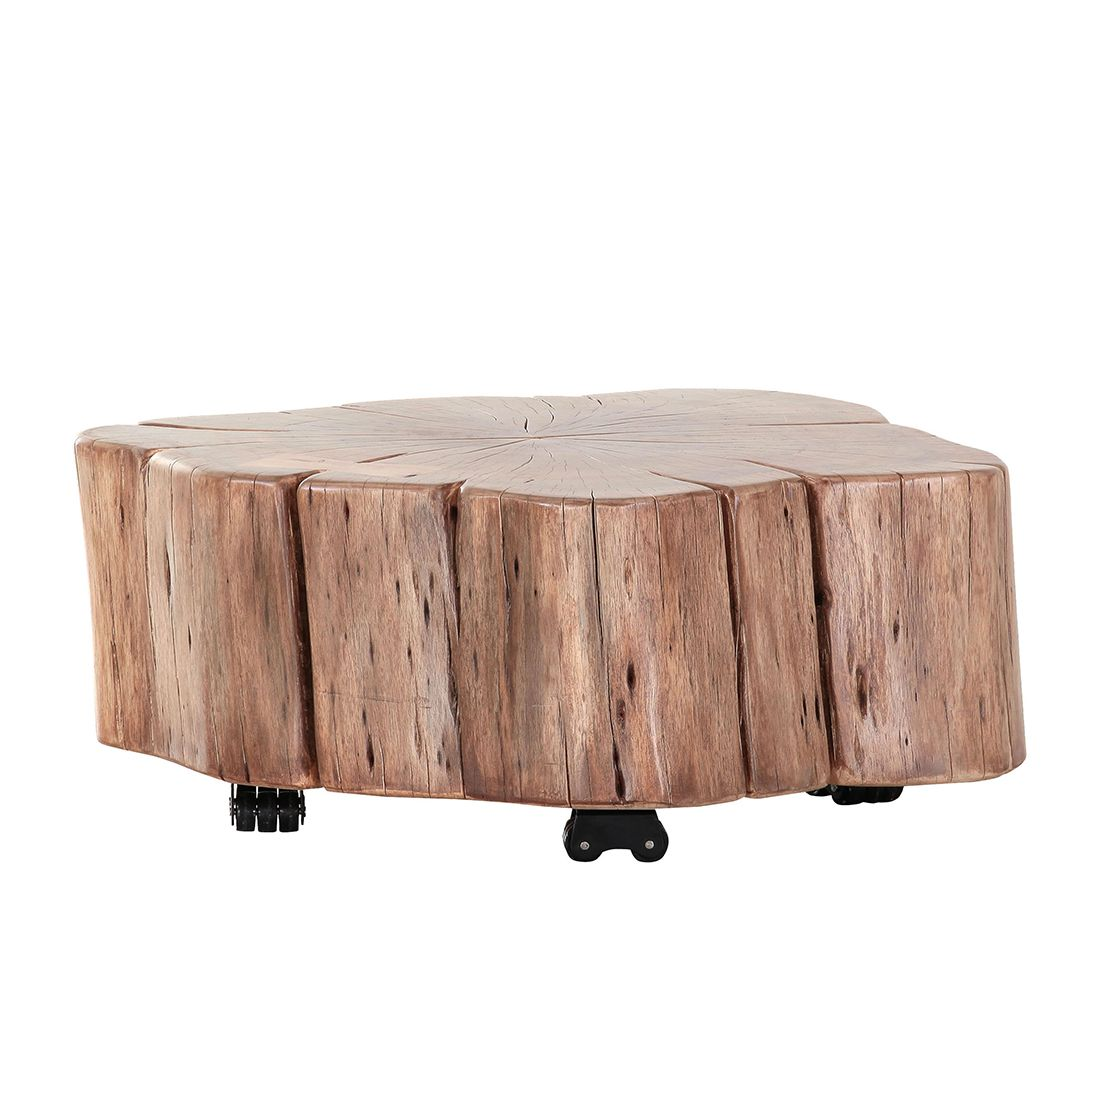 Table d'appoint Groovy I - Acacia massif, ars manufacti